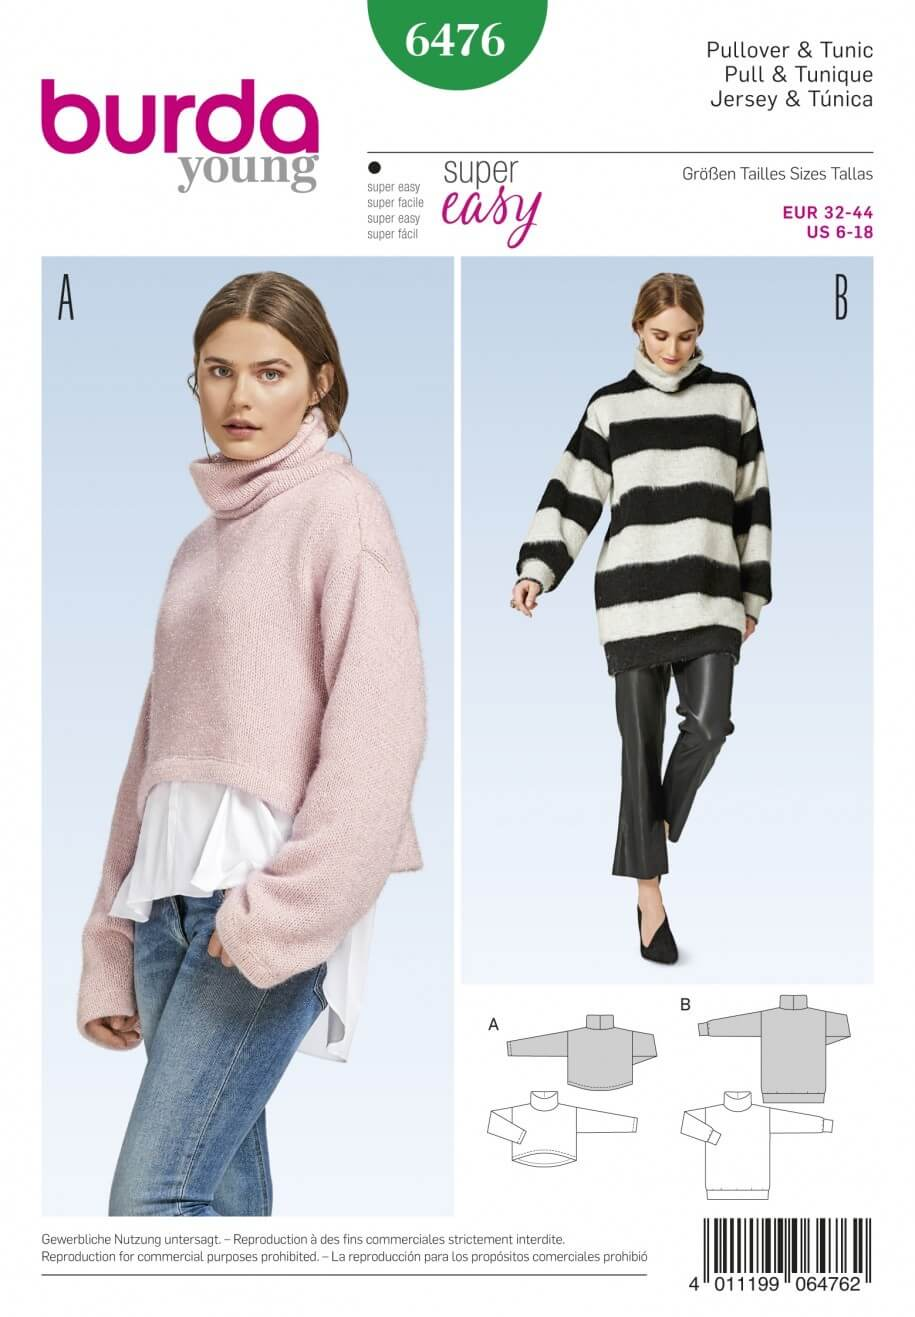 Burda Style Women's Pullover Collared Jumper Top Dress Sewing Pattern 6476